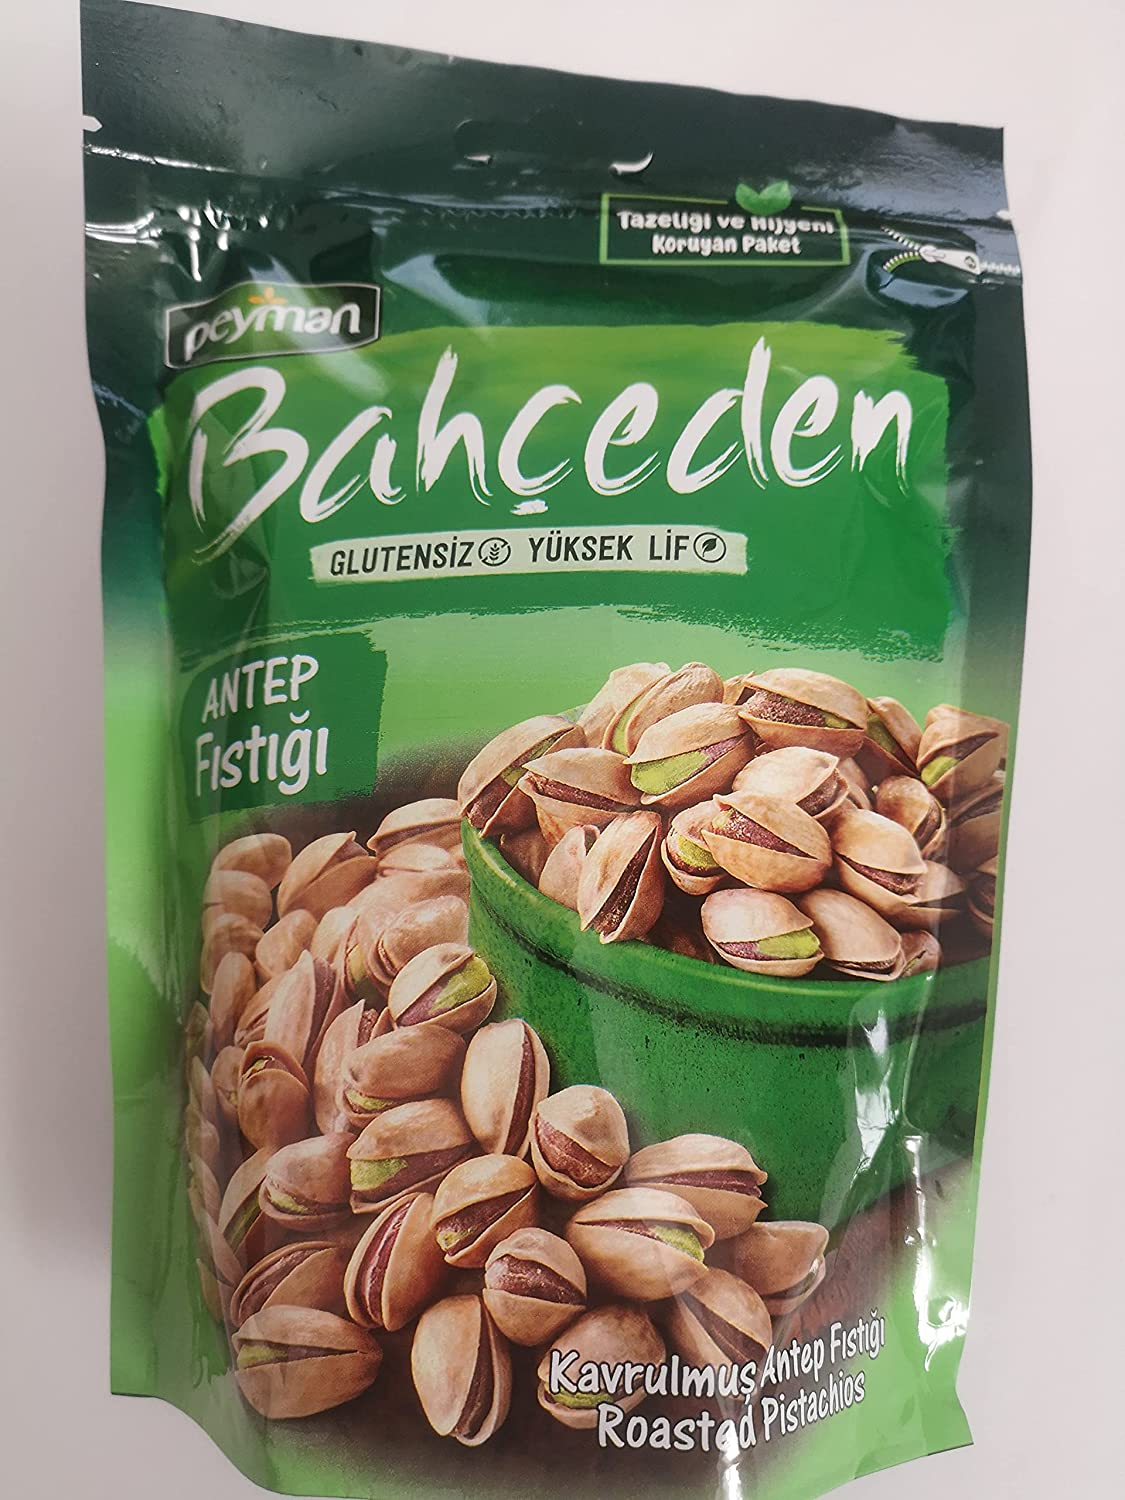 Roasted Pistachios Nuts 150g safety 5.2oz high free contains 5 ☆ very popular gluten